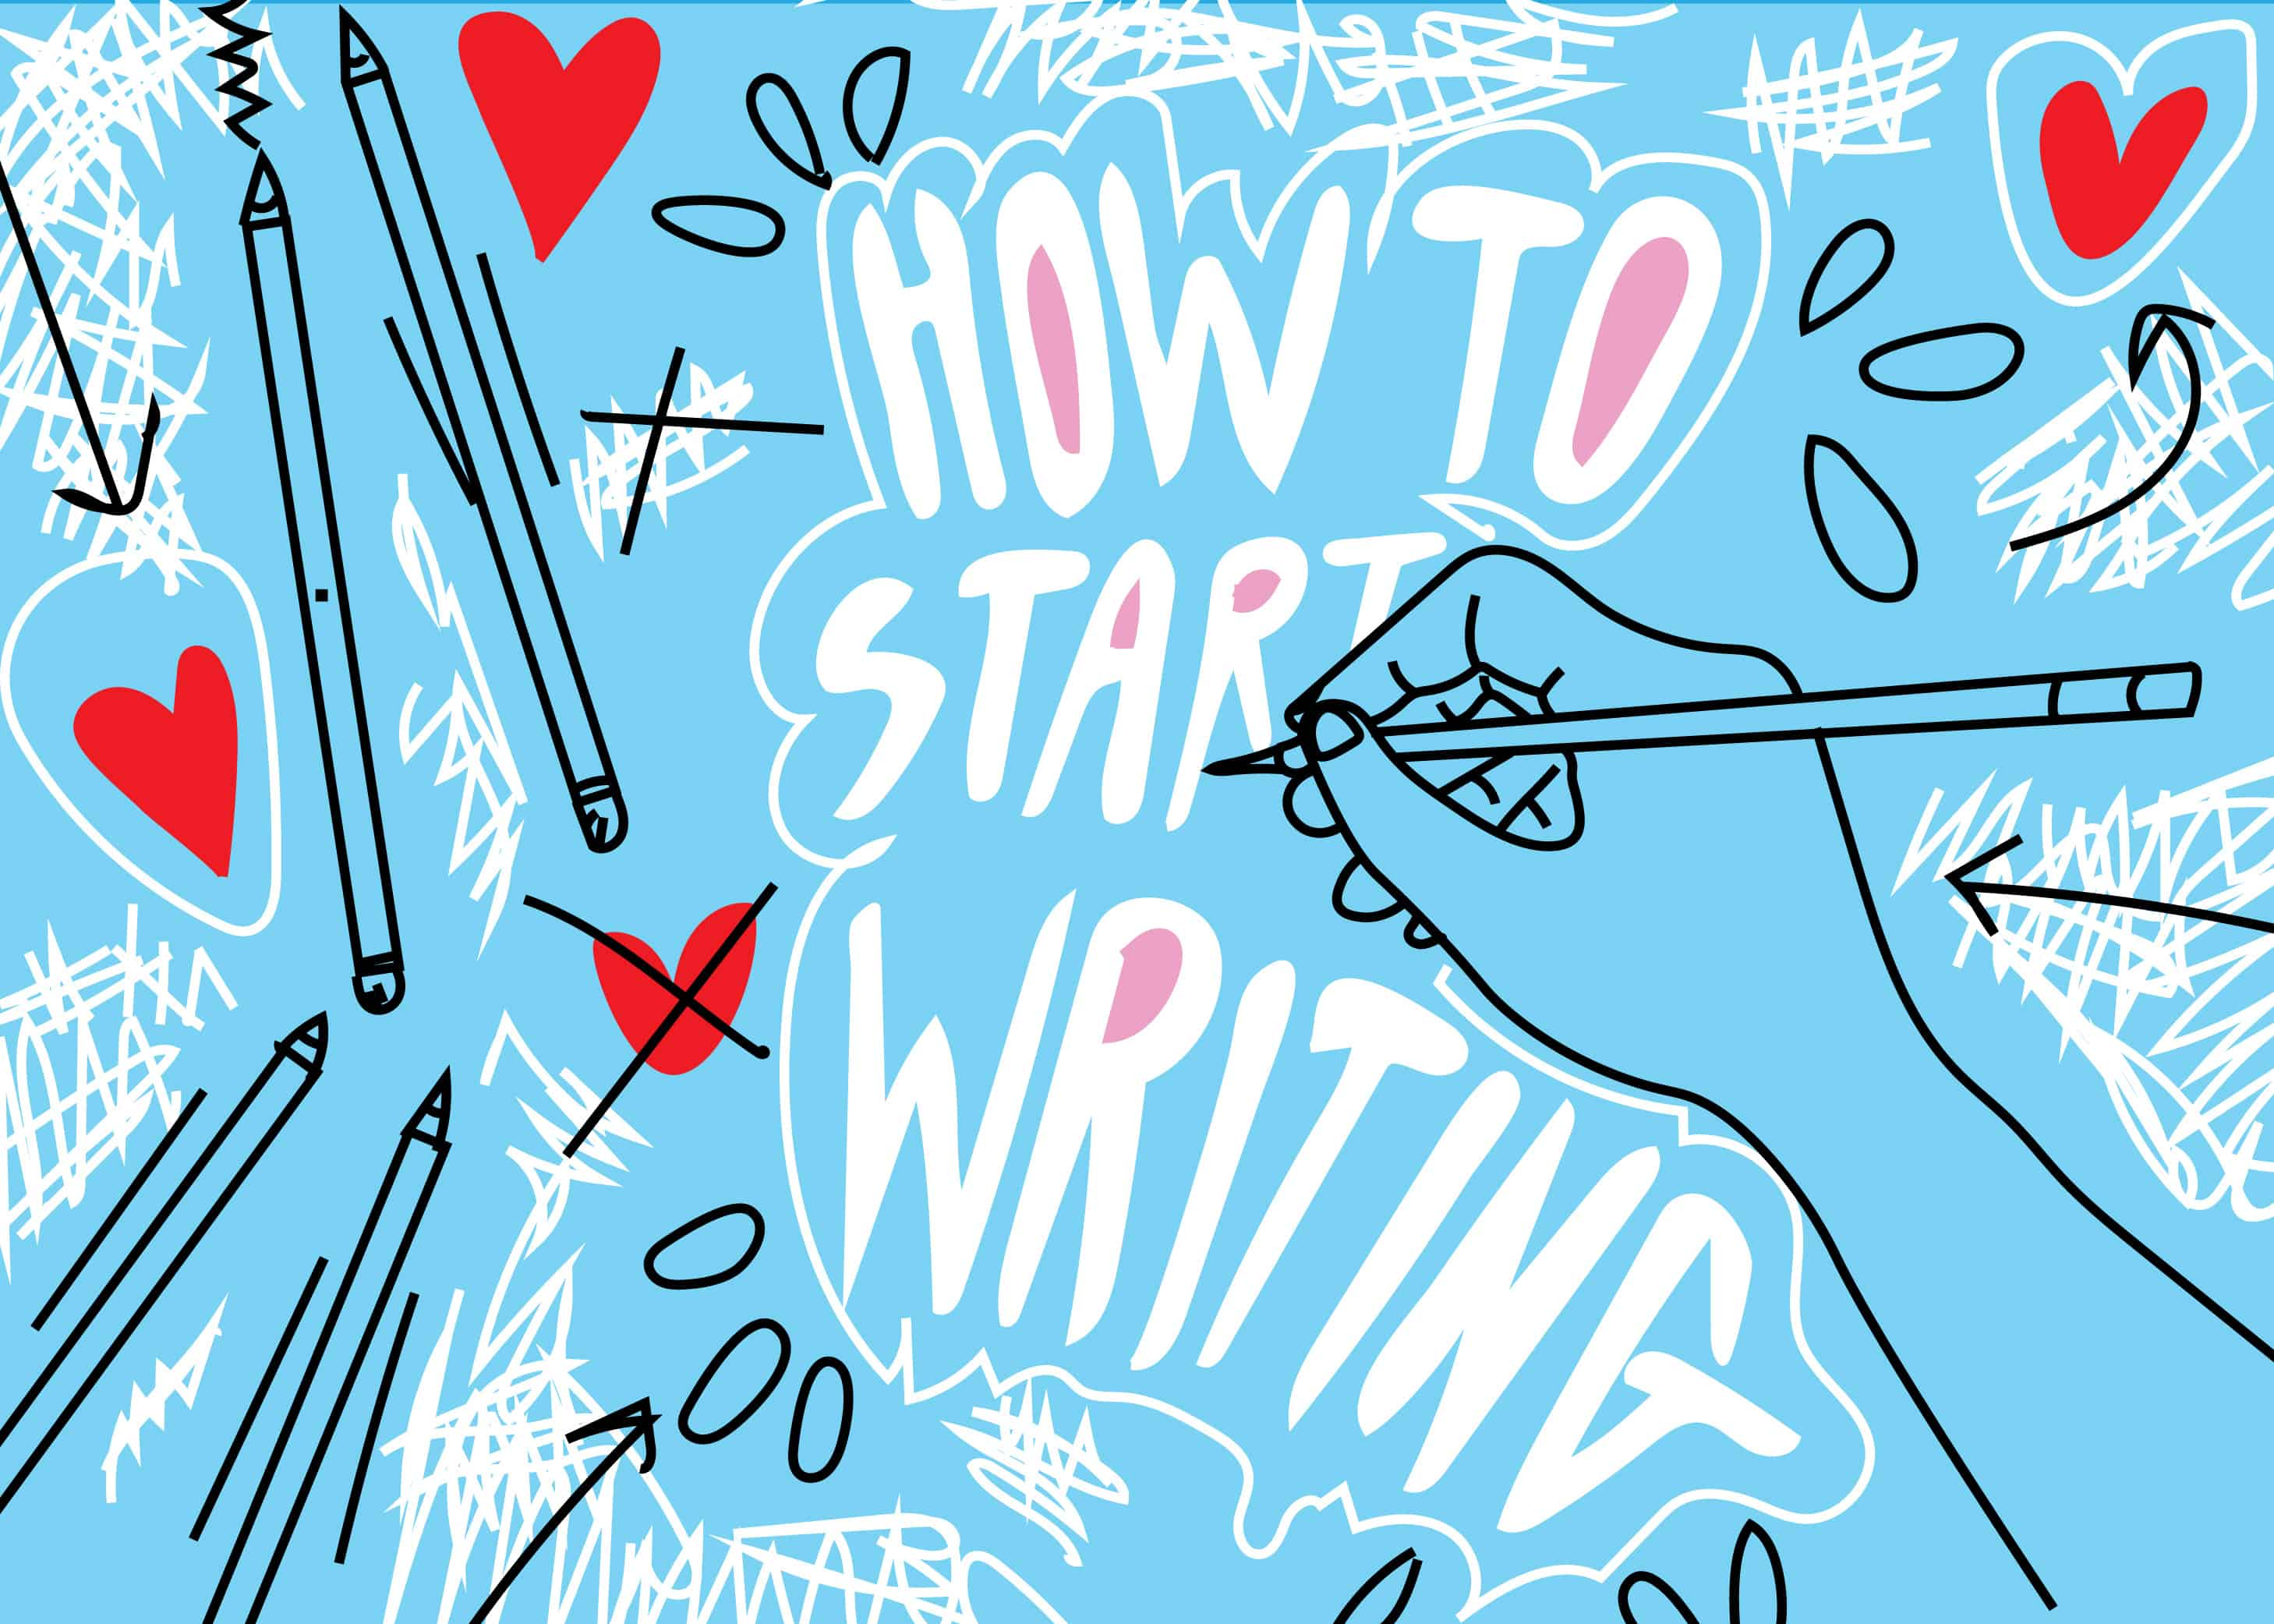 How to start writing 76